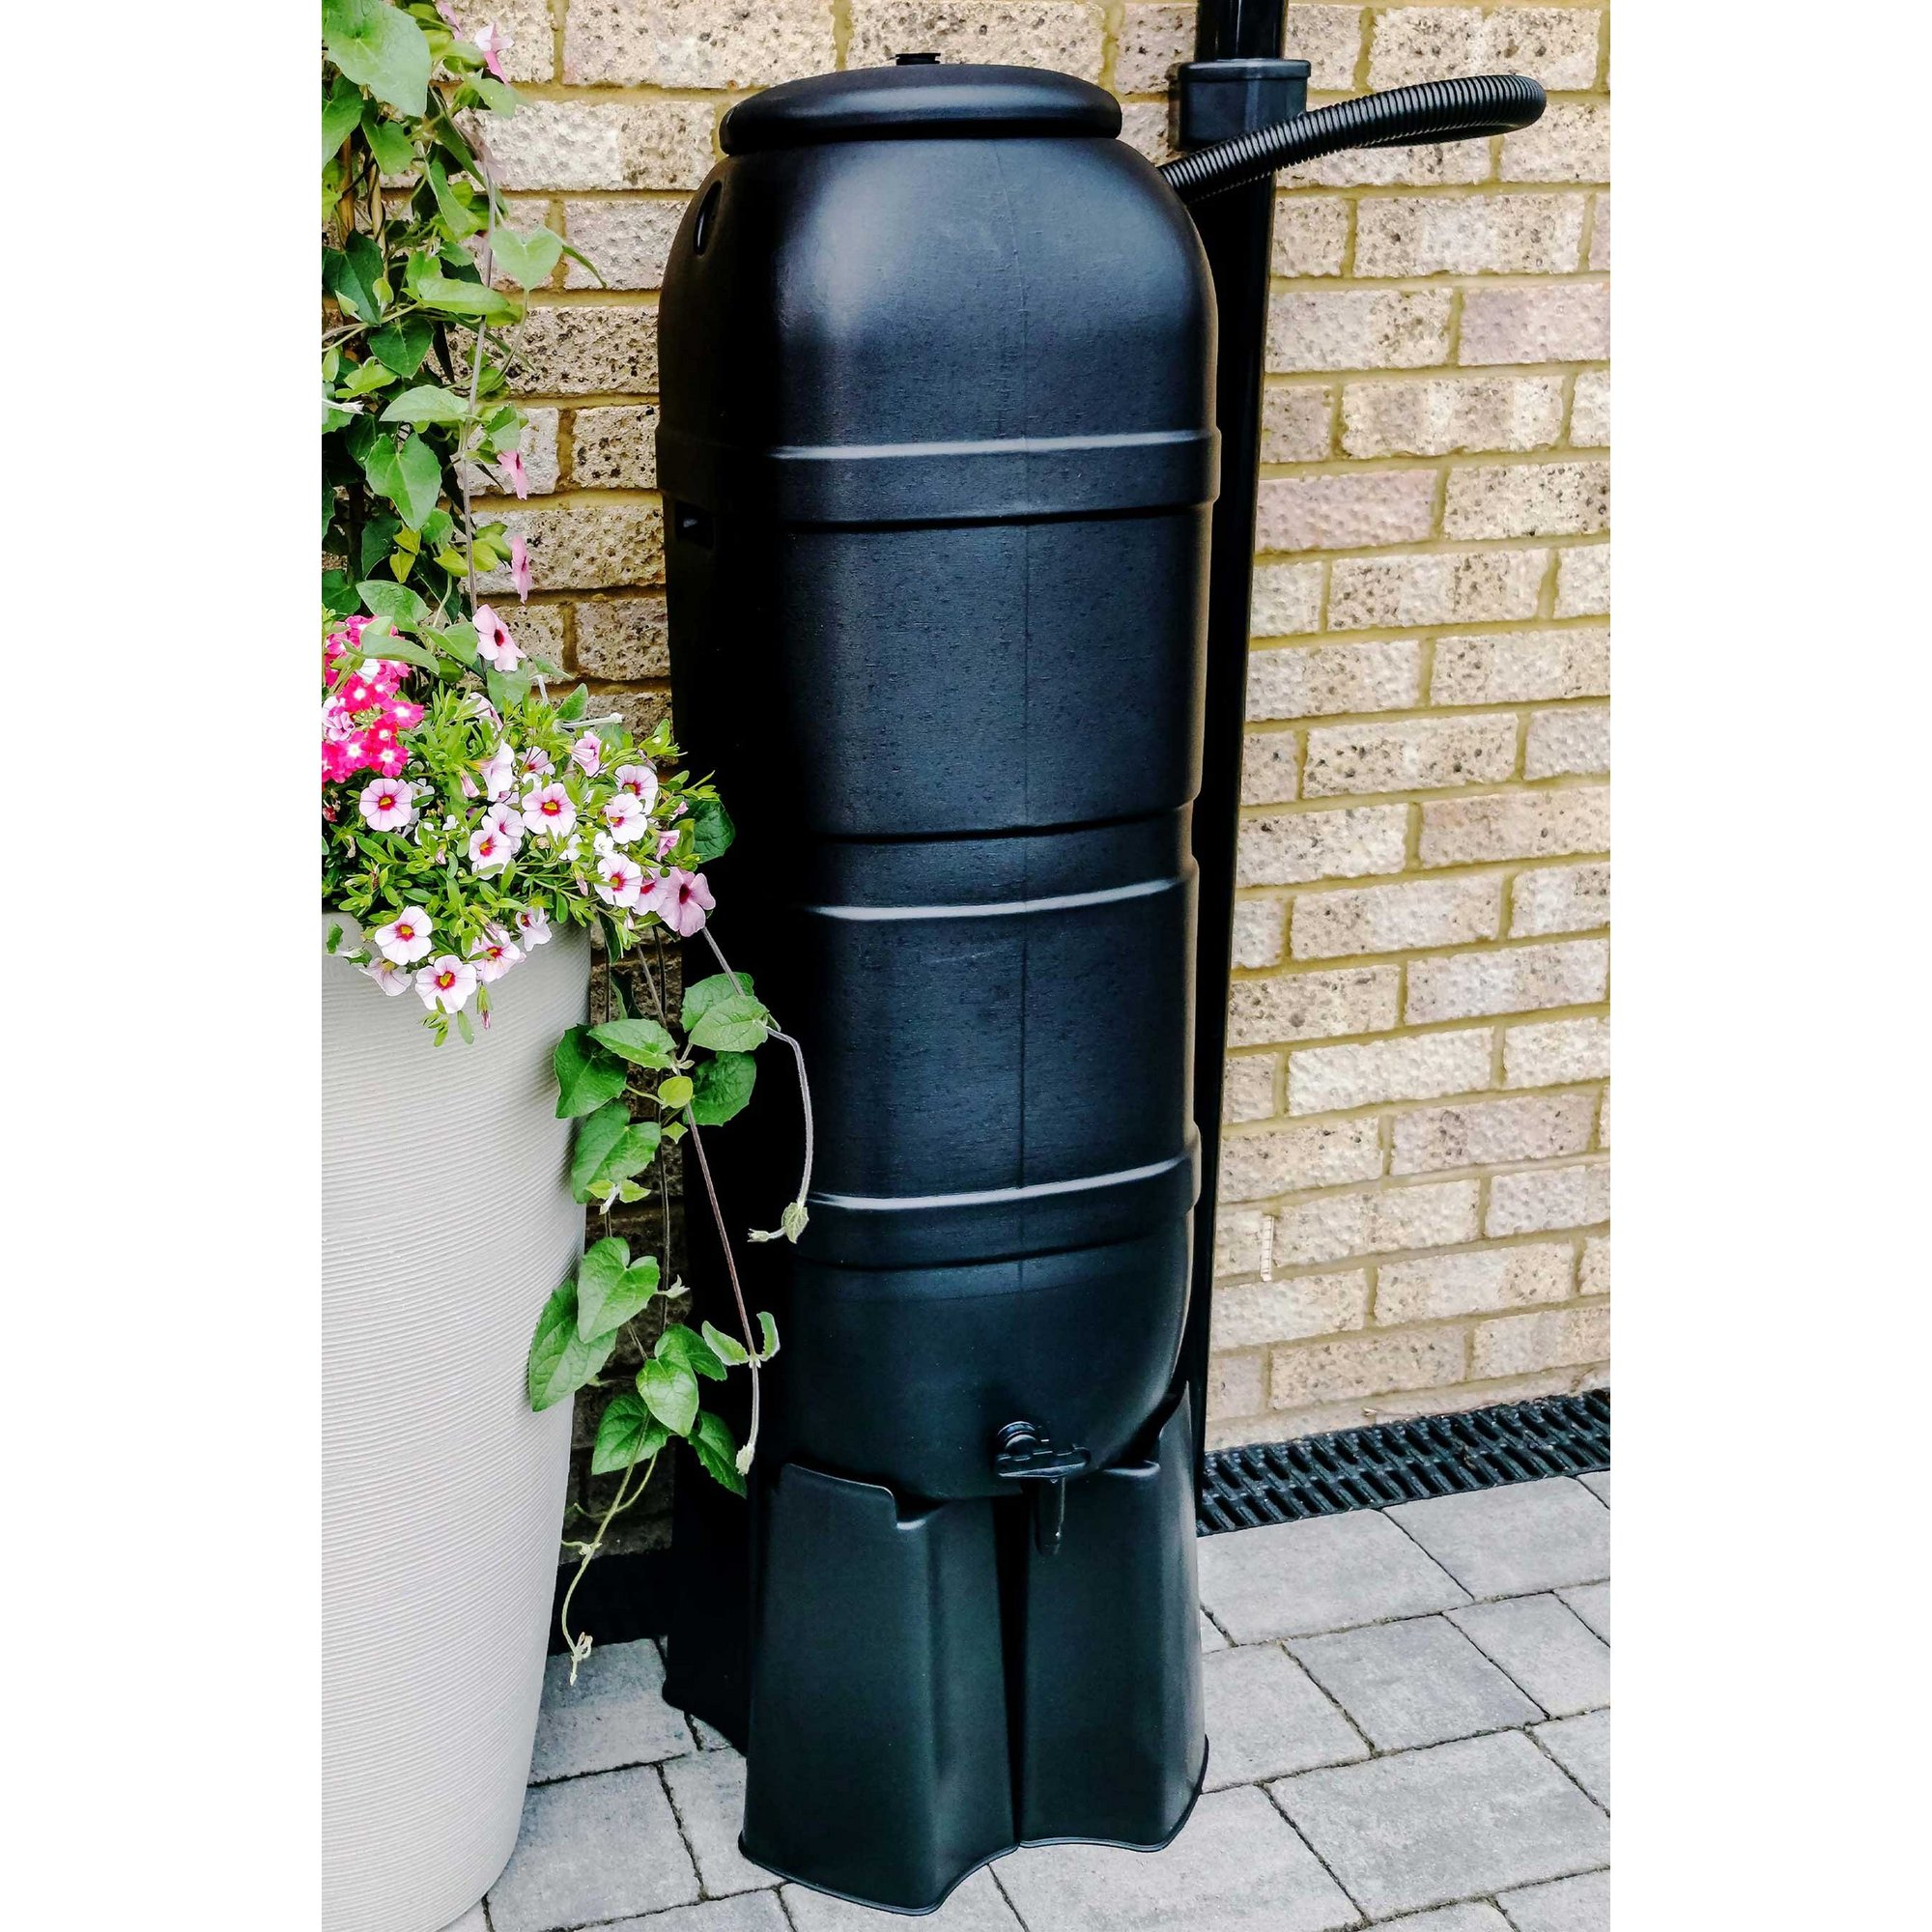 Image of 100L Slimline Garden Water Butt Set Including Tap Stand and Filler Kit